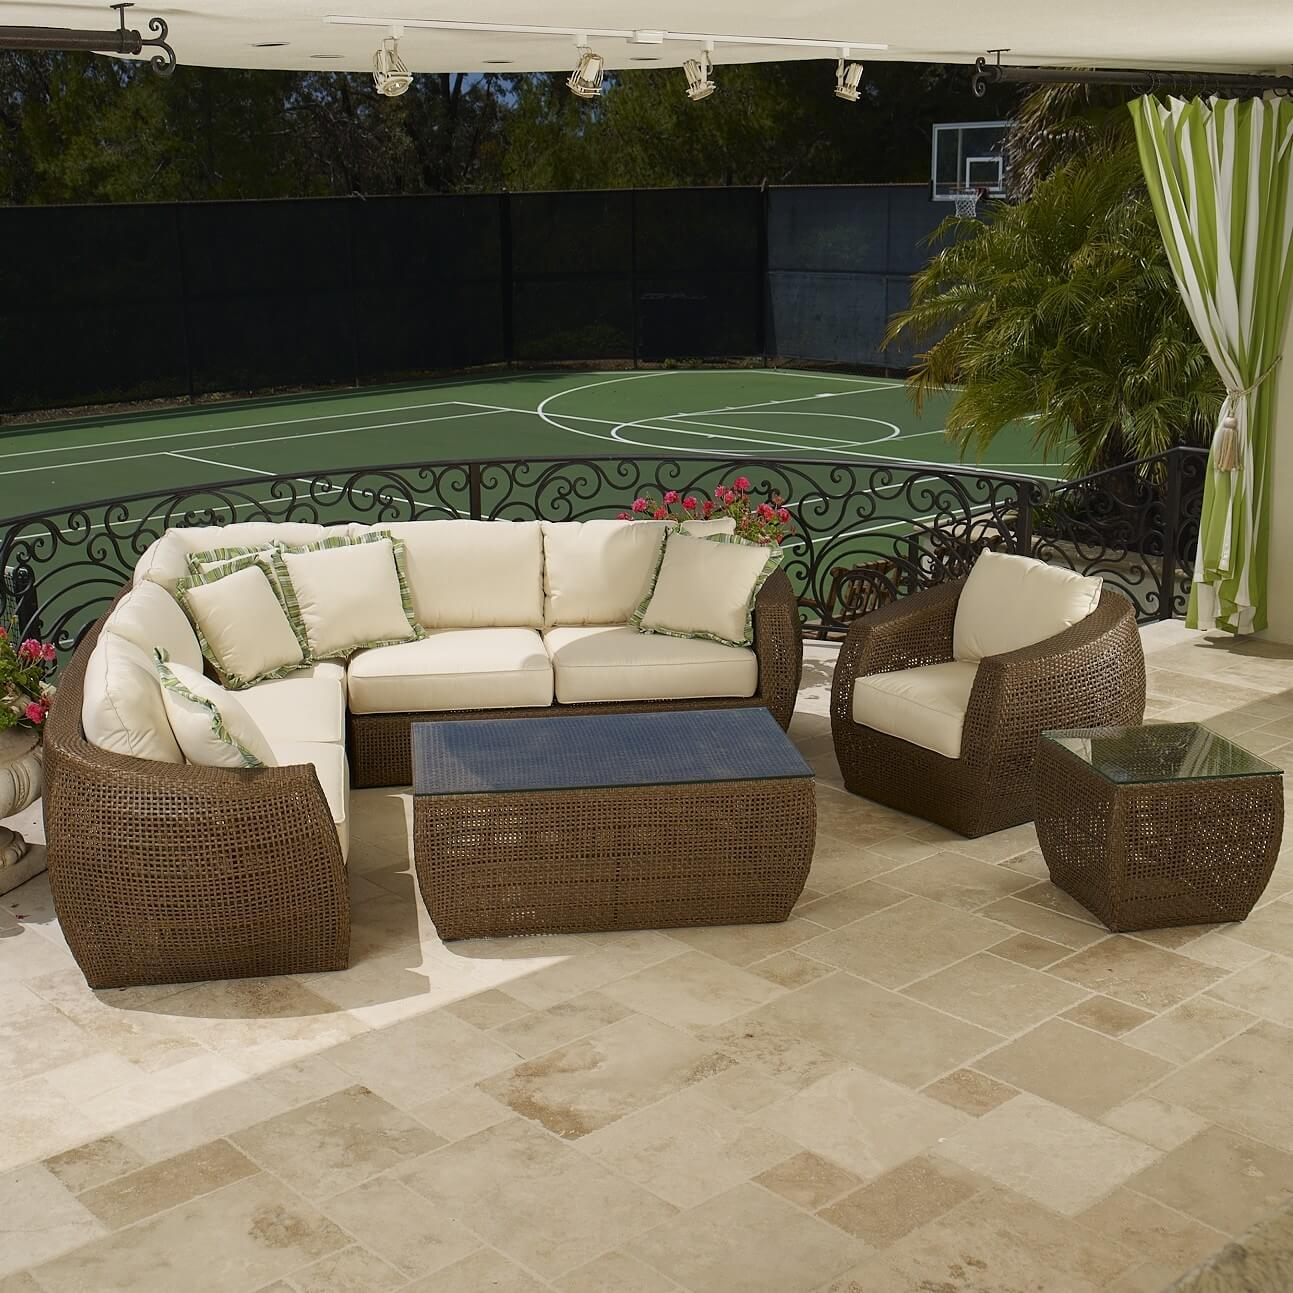 This wheat-toned deep seating sectional wraps thick white cushioning in a rounded body, with L-shaped main body and separate armchair for multiple seating options. Includes glass topped coffee and side tables.